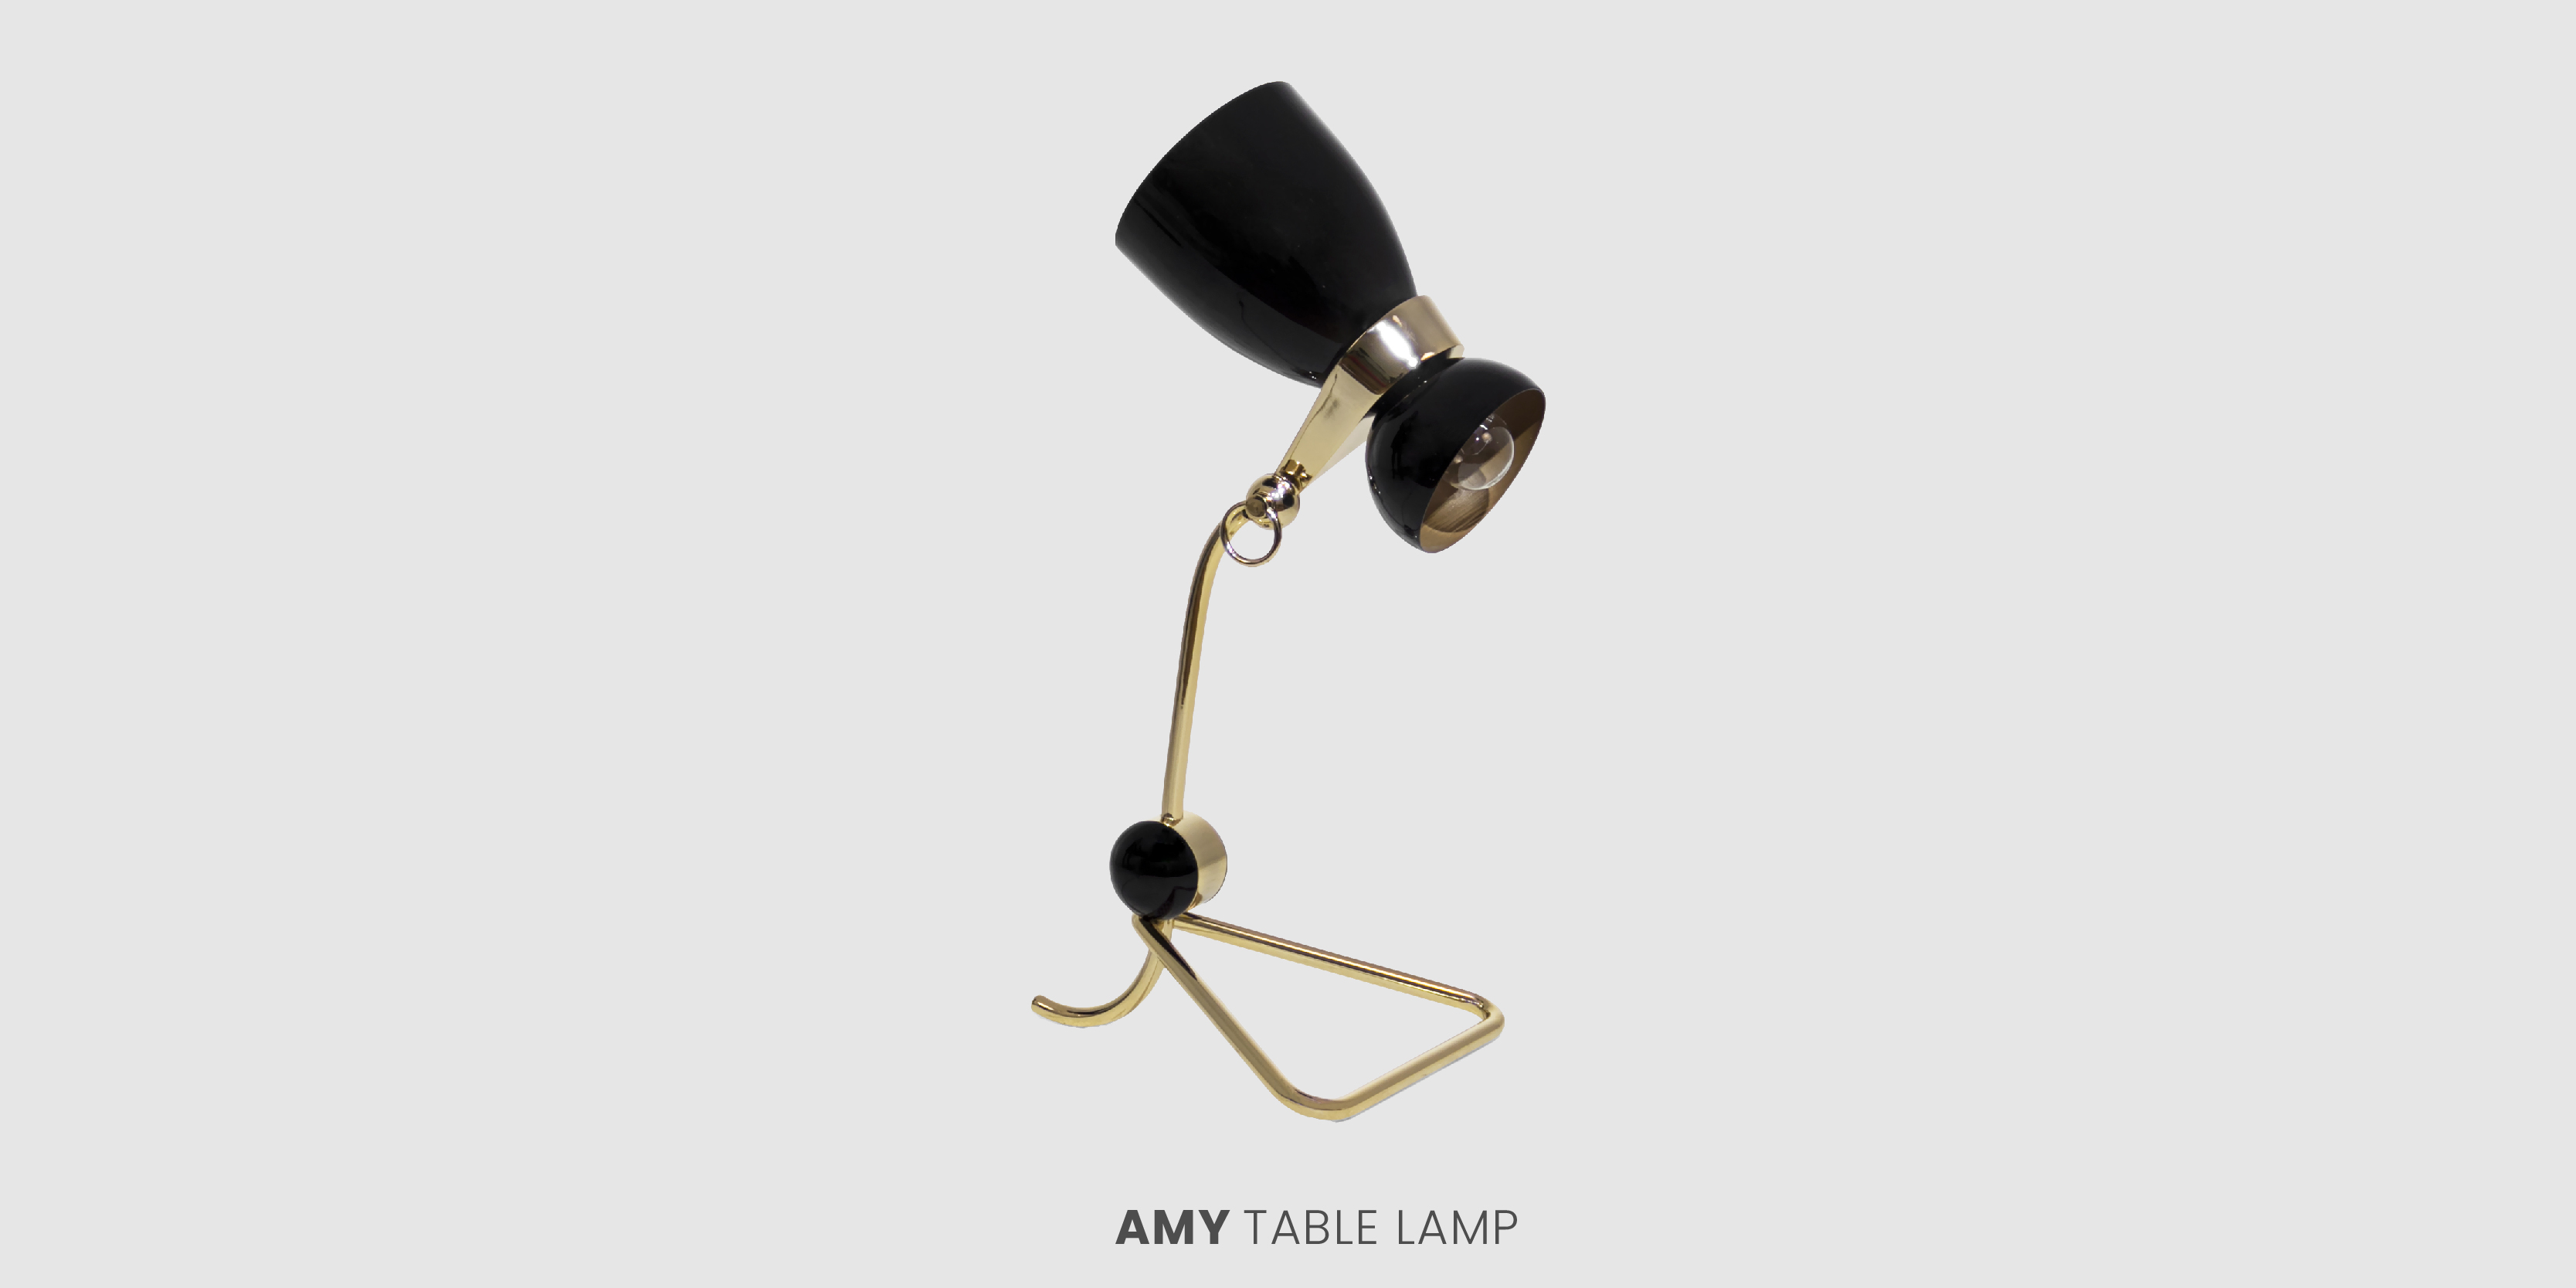 Amy Table